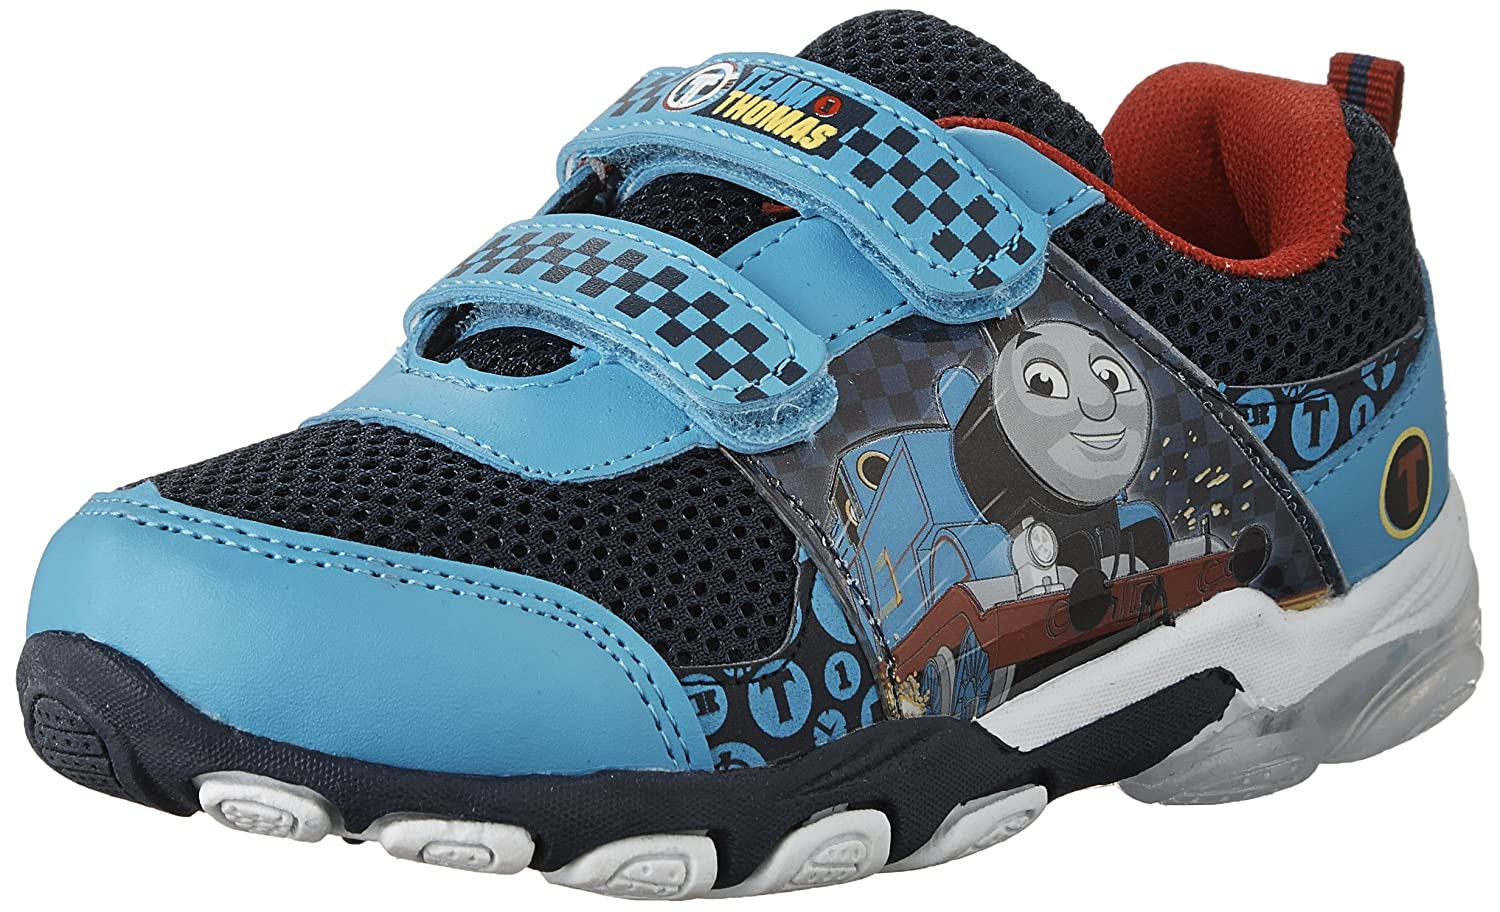 Thomas and Friends Kids' 61247 Athletic Shoe Lighted Outsole-K Blue 5 M US Toddler